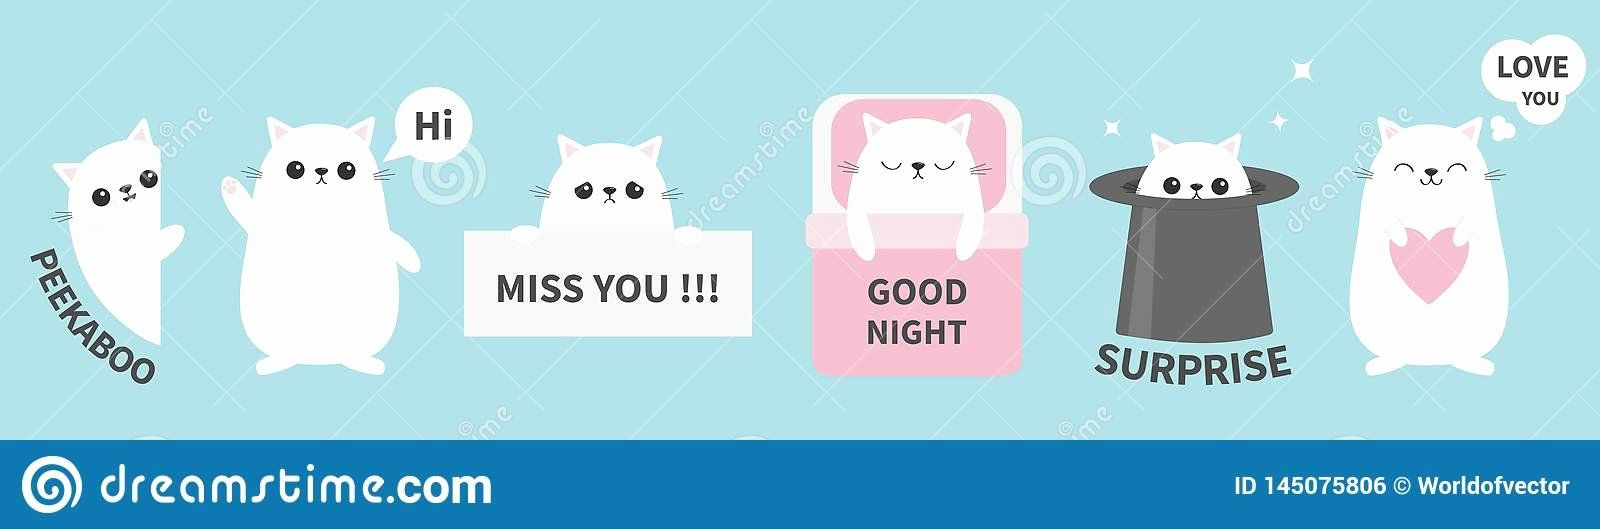 Missing You Stickers In 2020 Miss You